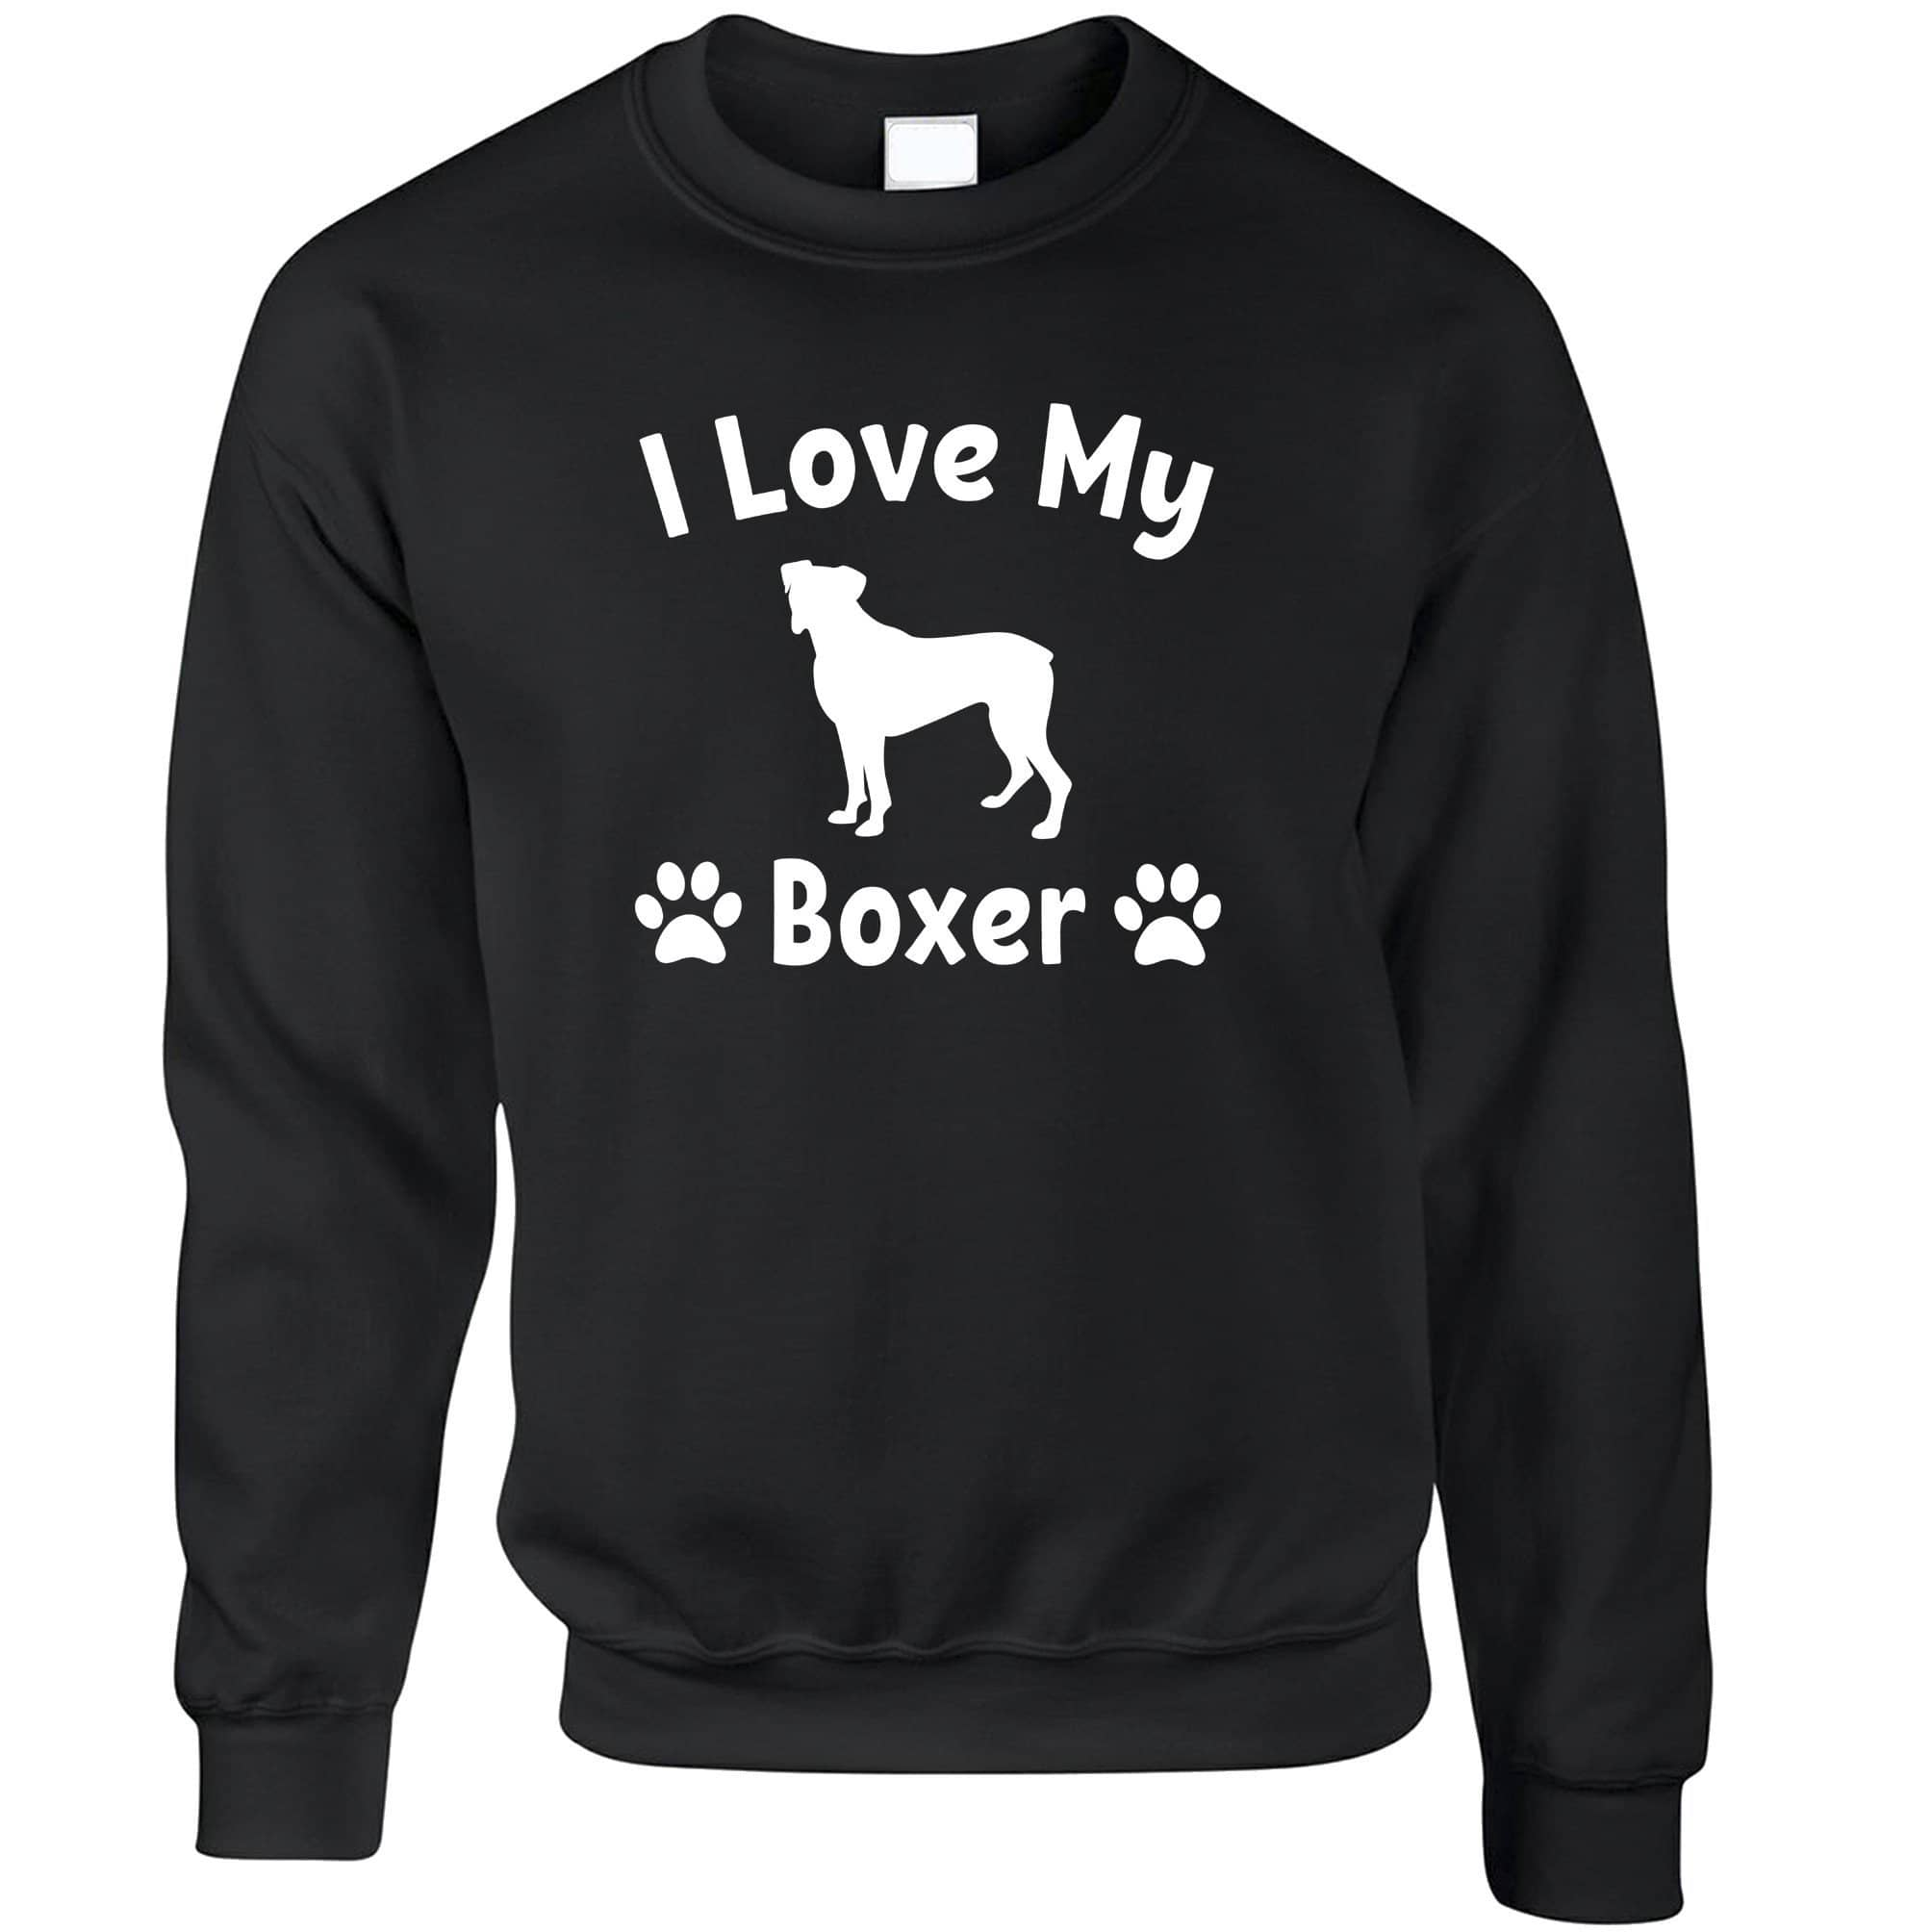 Dog Owner Jumper I Love My Boxer Dog Owner Sweatshirt Sweater